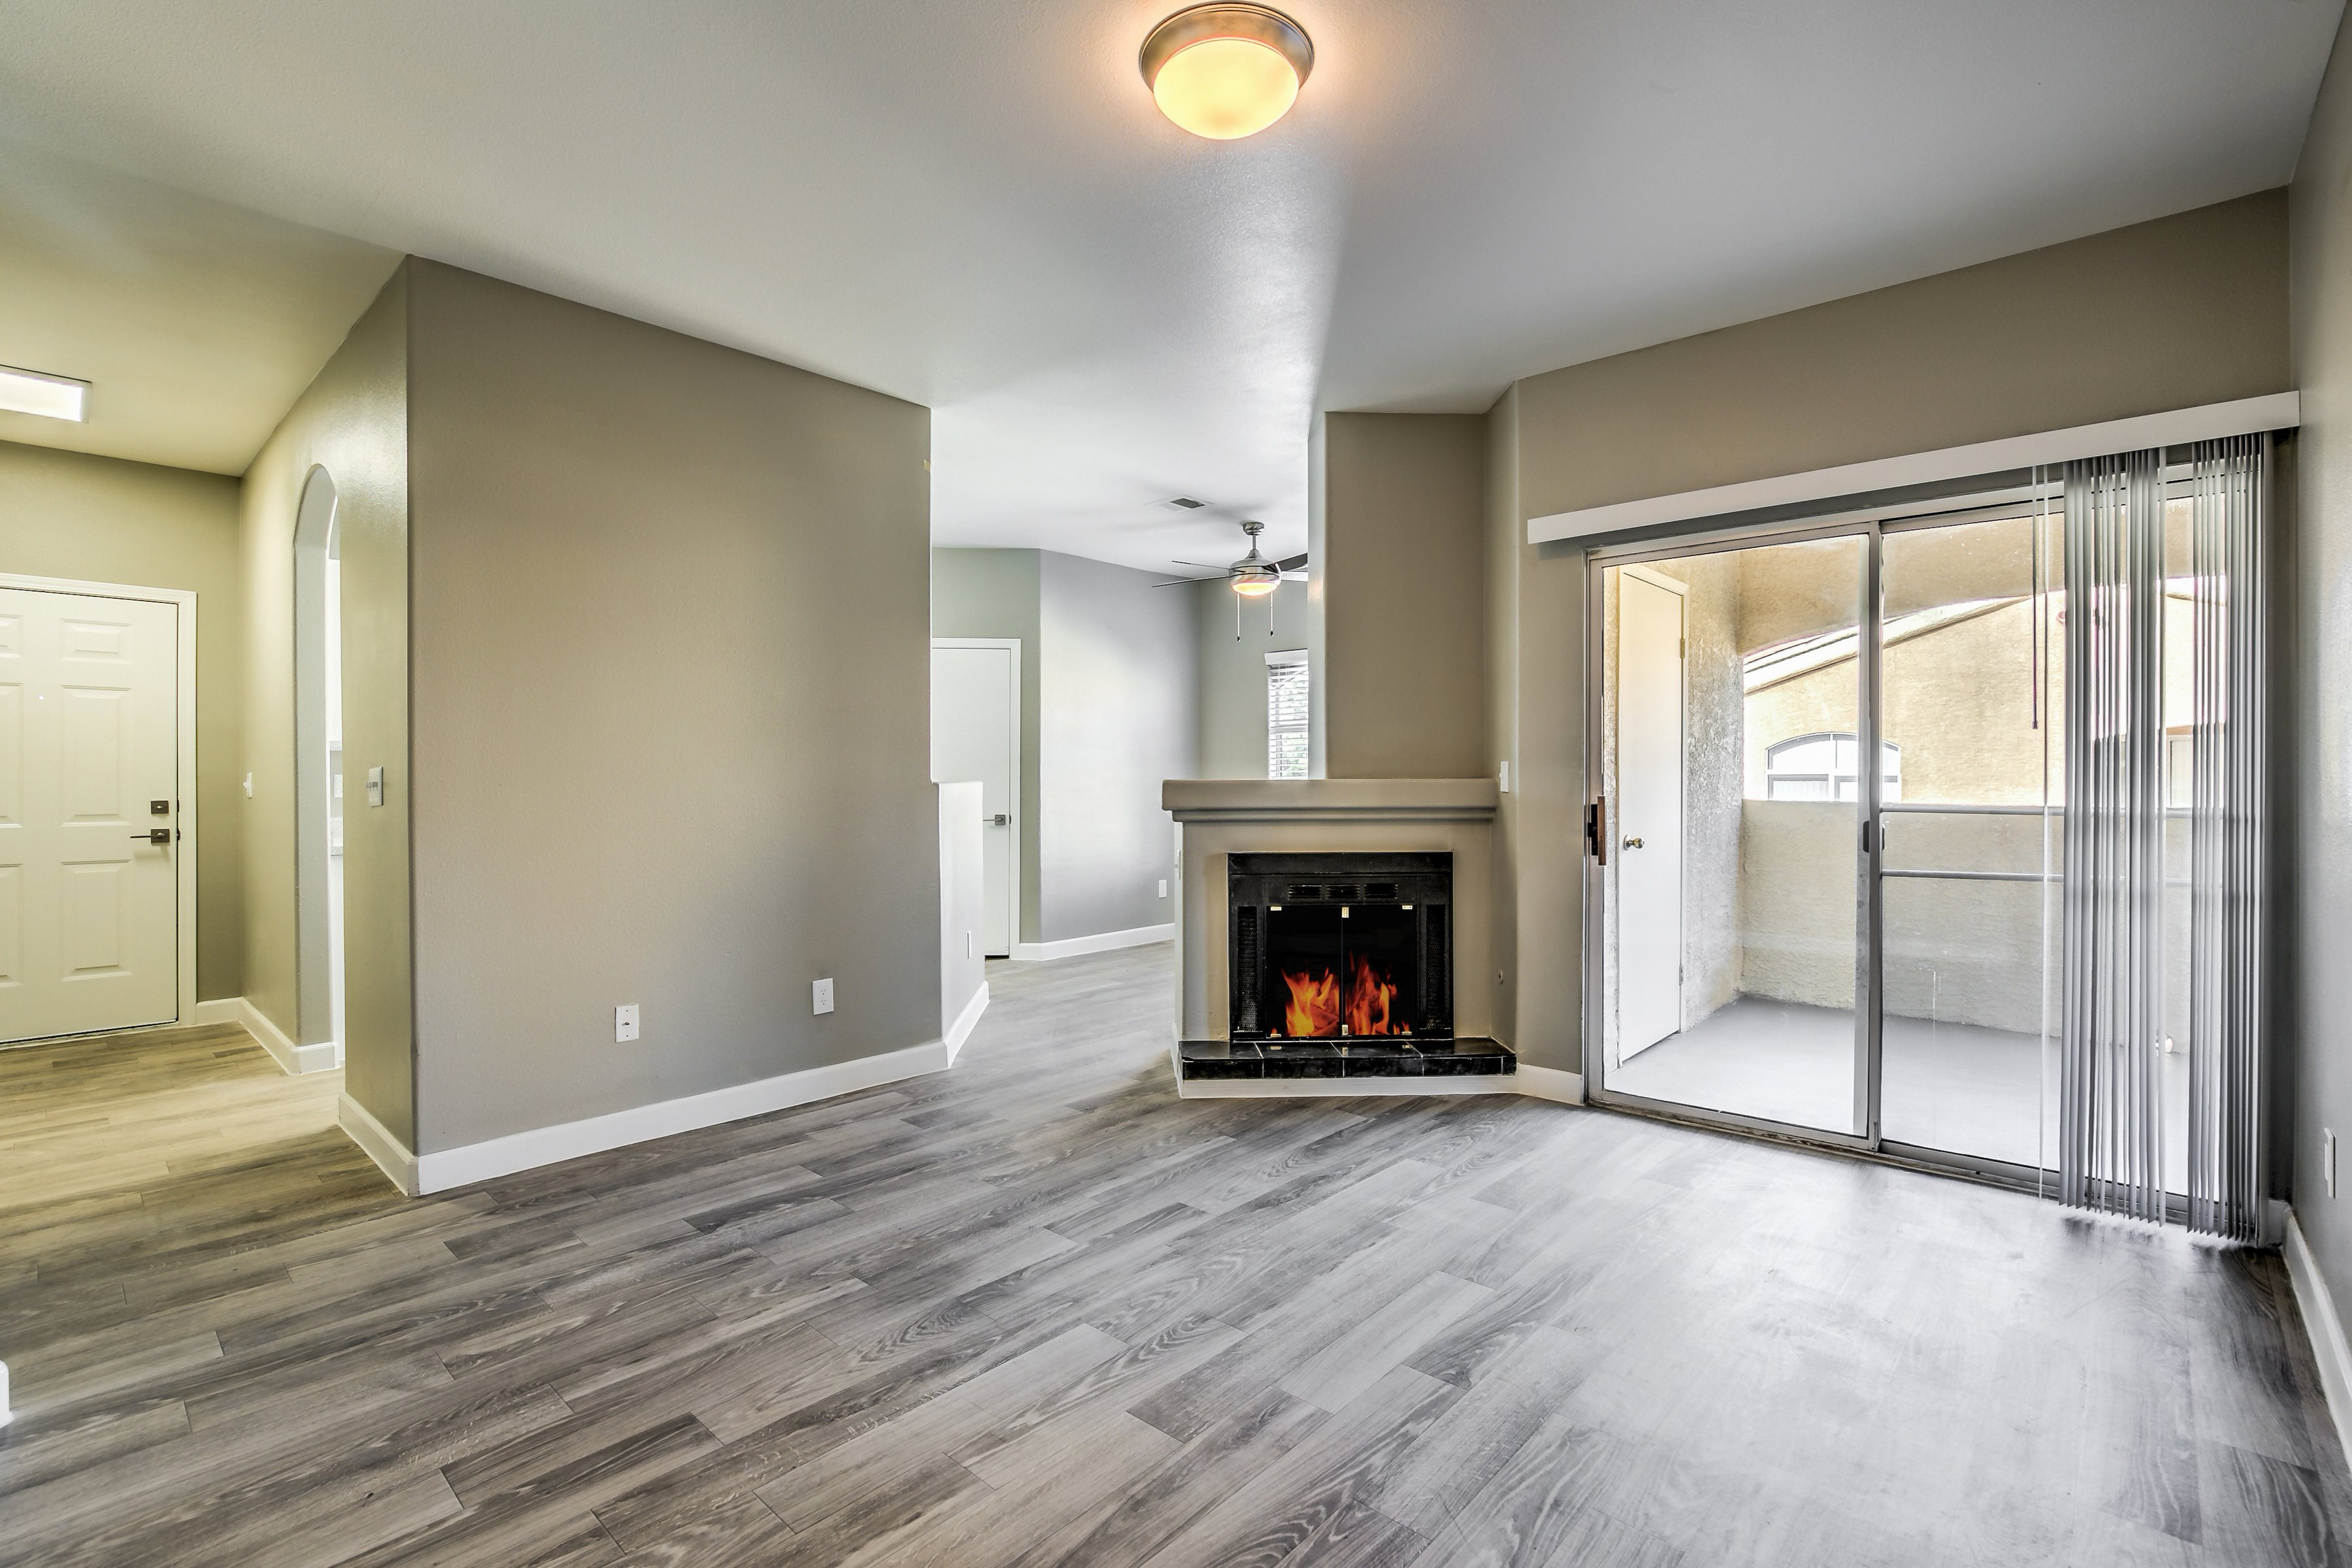 Spacious Living room with Fireplace at Calypso Apartments, Las Vegas, NV